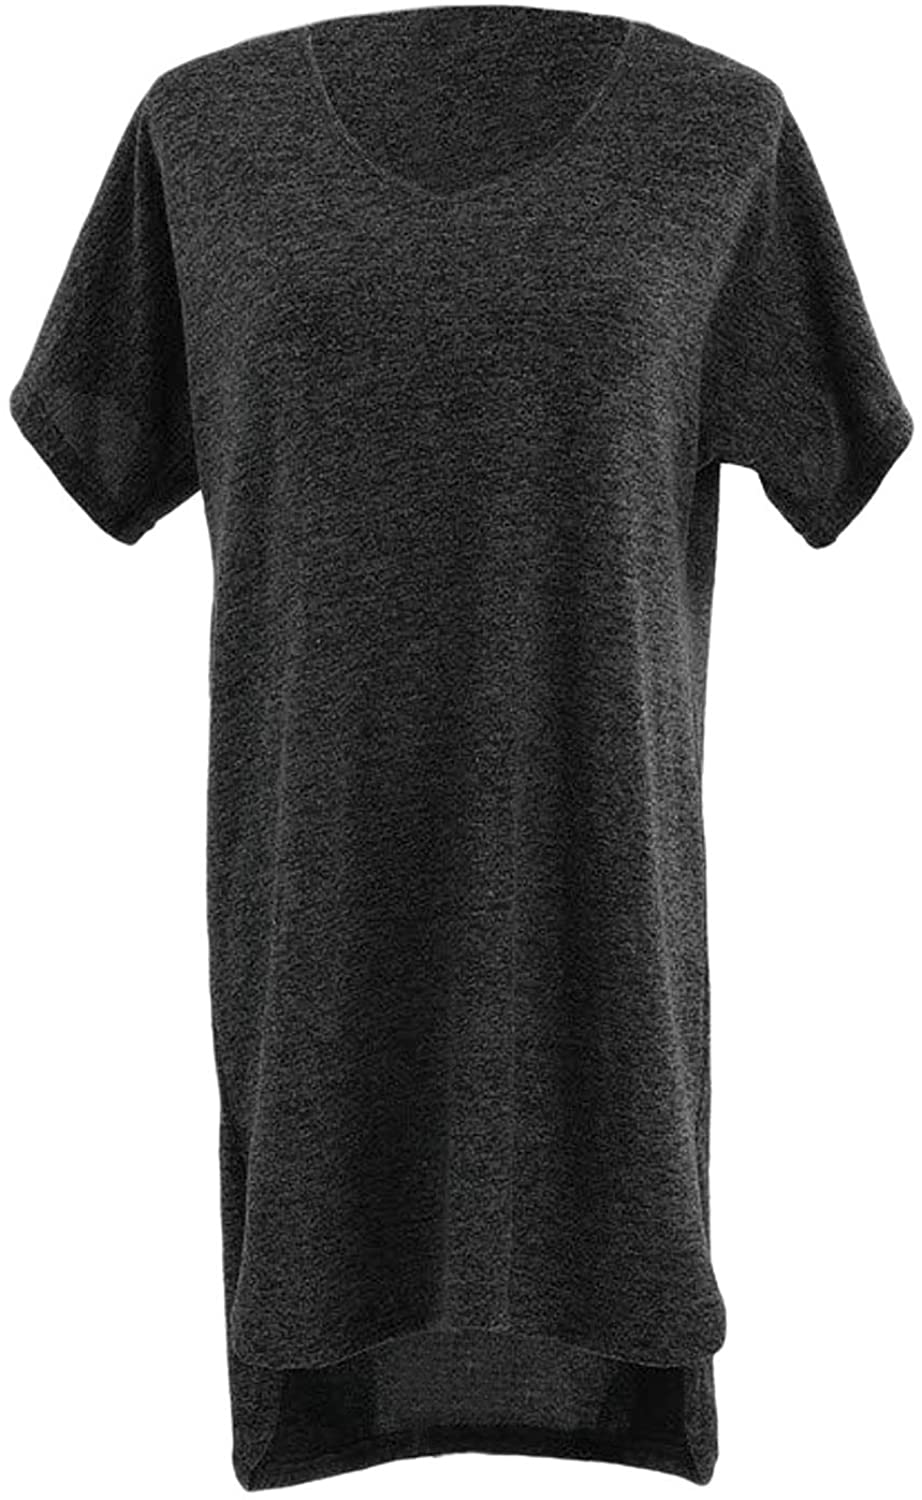 DEMDACO Long Lounge Charcoal Grey Women's Large/X-Large Polyester Fabric Fashion T-Shirt